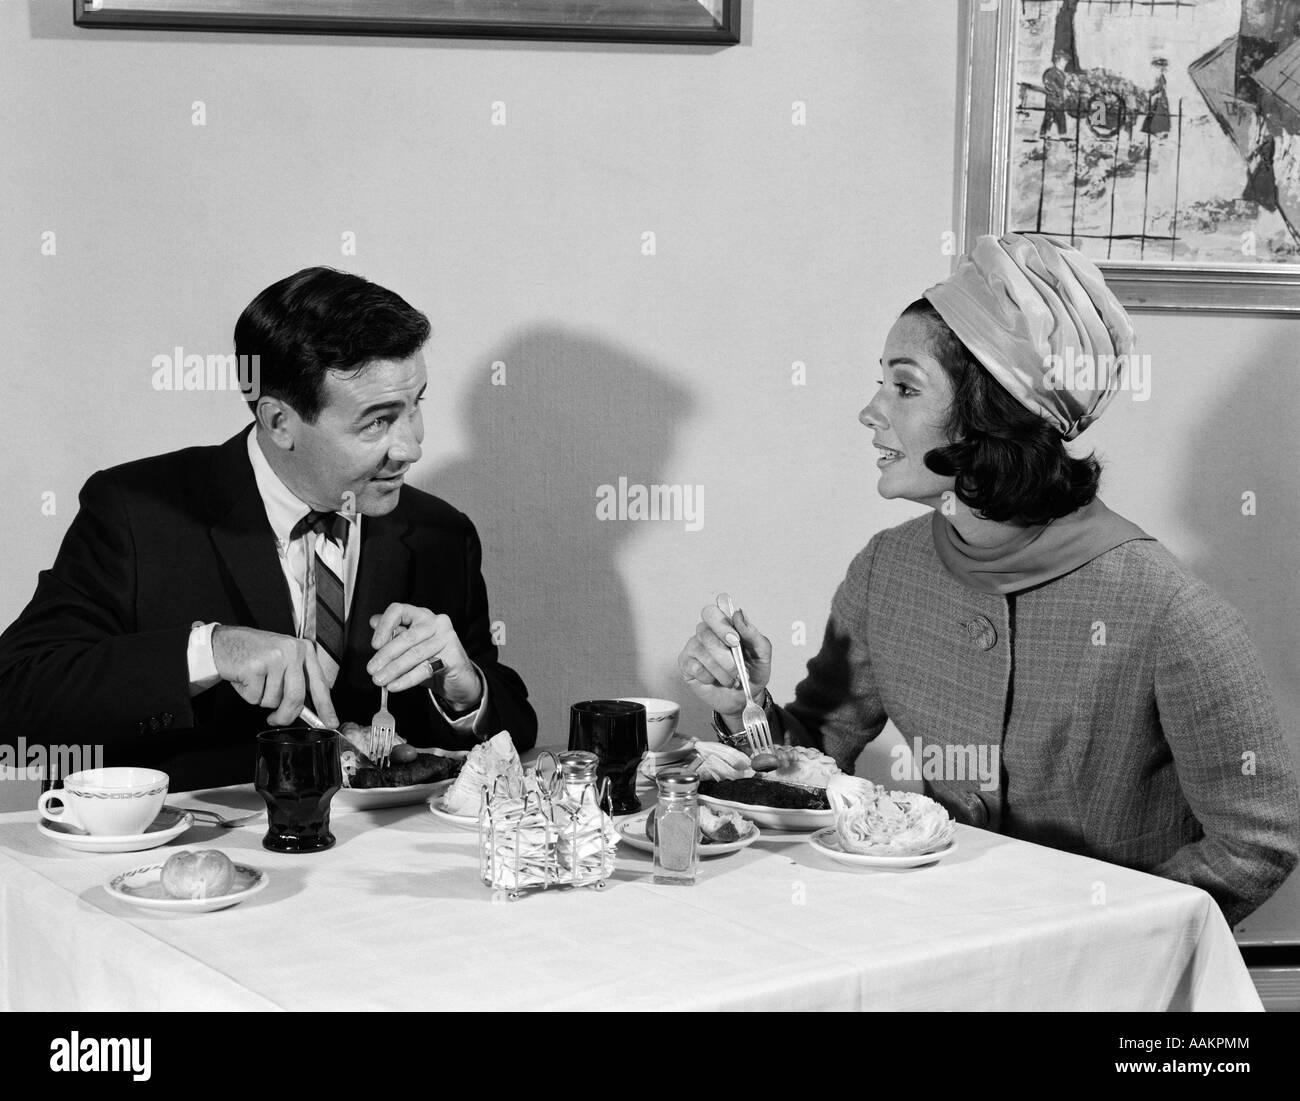 1960s COUPLE MAN WOMAN EATING MEAL IN RESTAURANT WOMAN WEARS TURBAN STYLE  HAT 61a5b29a31a